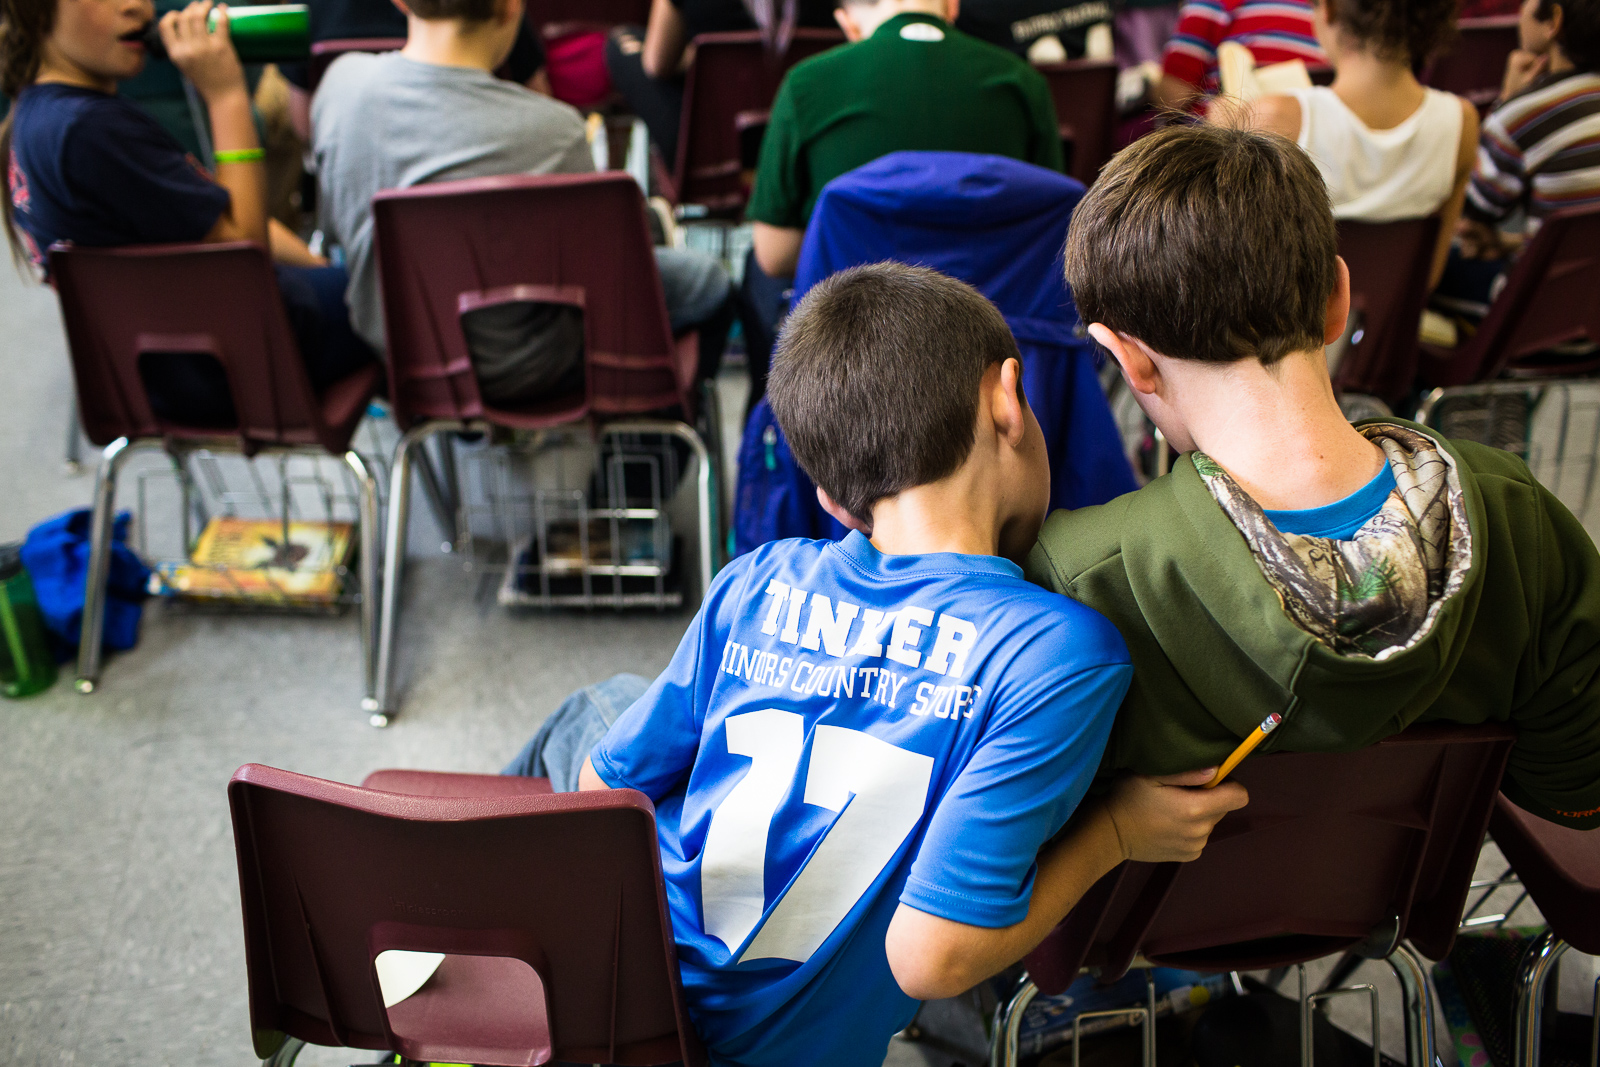 Students read the BFG by Roald Dahl during a Global Read Aloud exchange with a class in New York, at Fletcher Elementary in Fletcher, Vermont on Thursday, October 20, 2016. by Monica Donovan for the George Lucas Educational Foundation